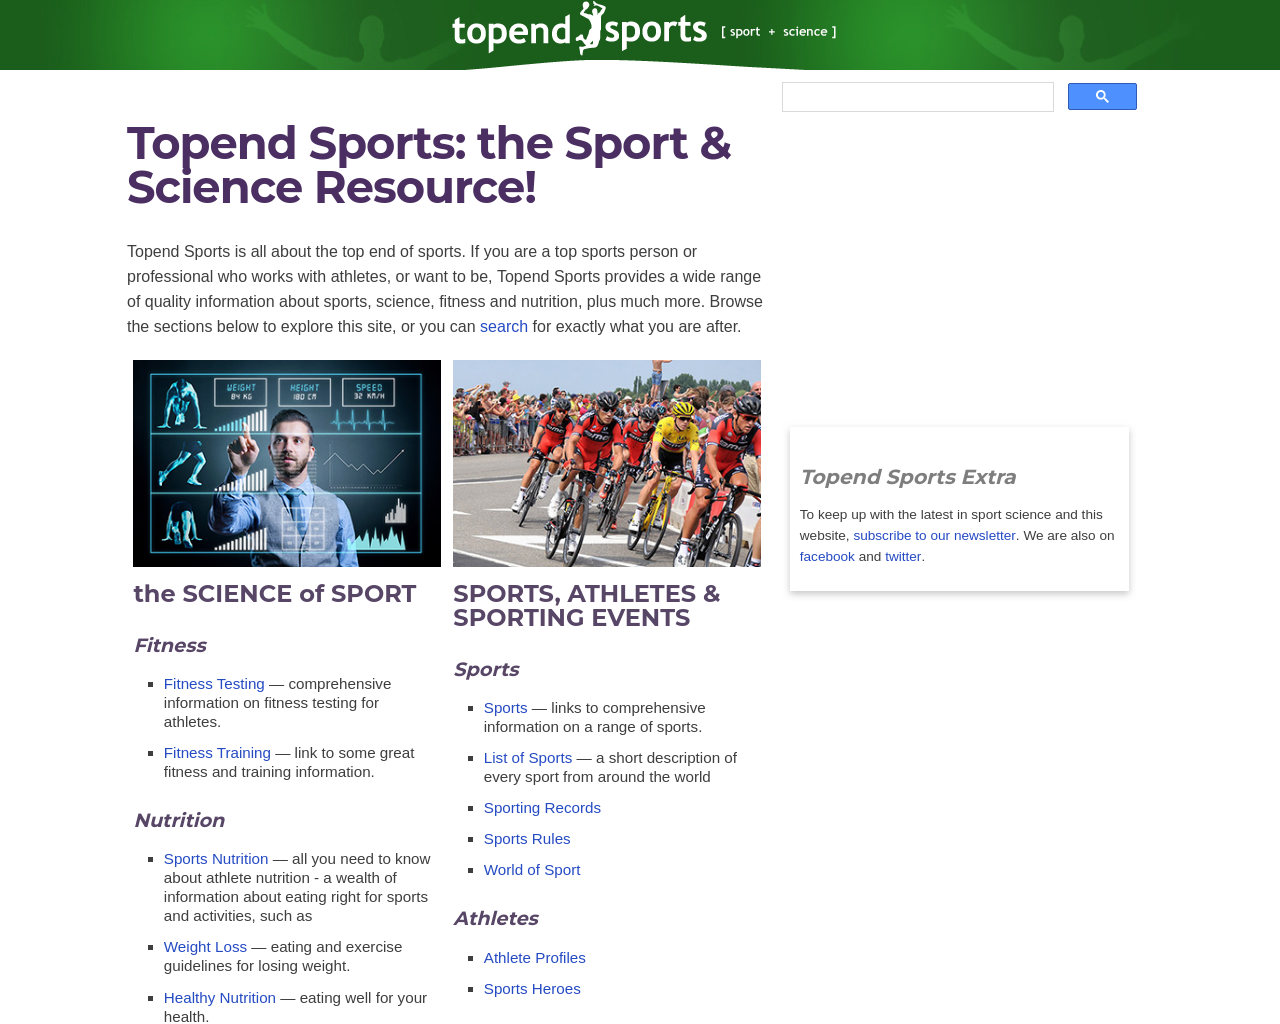 Top End Sports